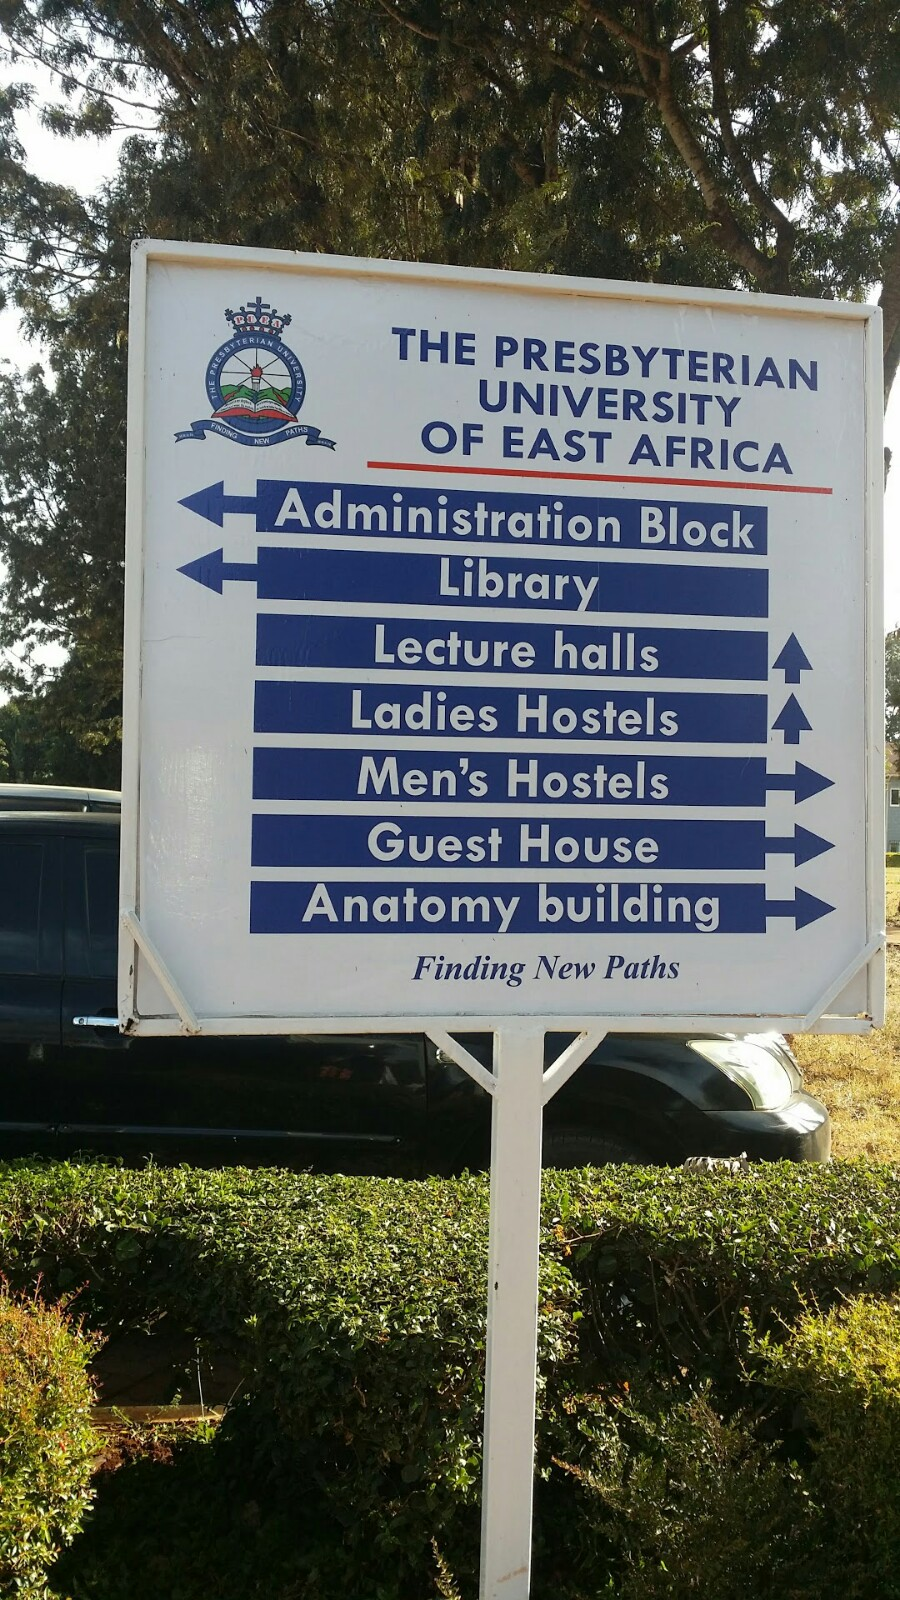 A sign directing visitors at the Presbyterian University of East Africa in Kenya.